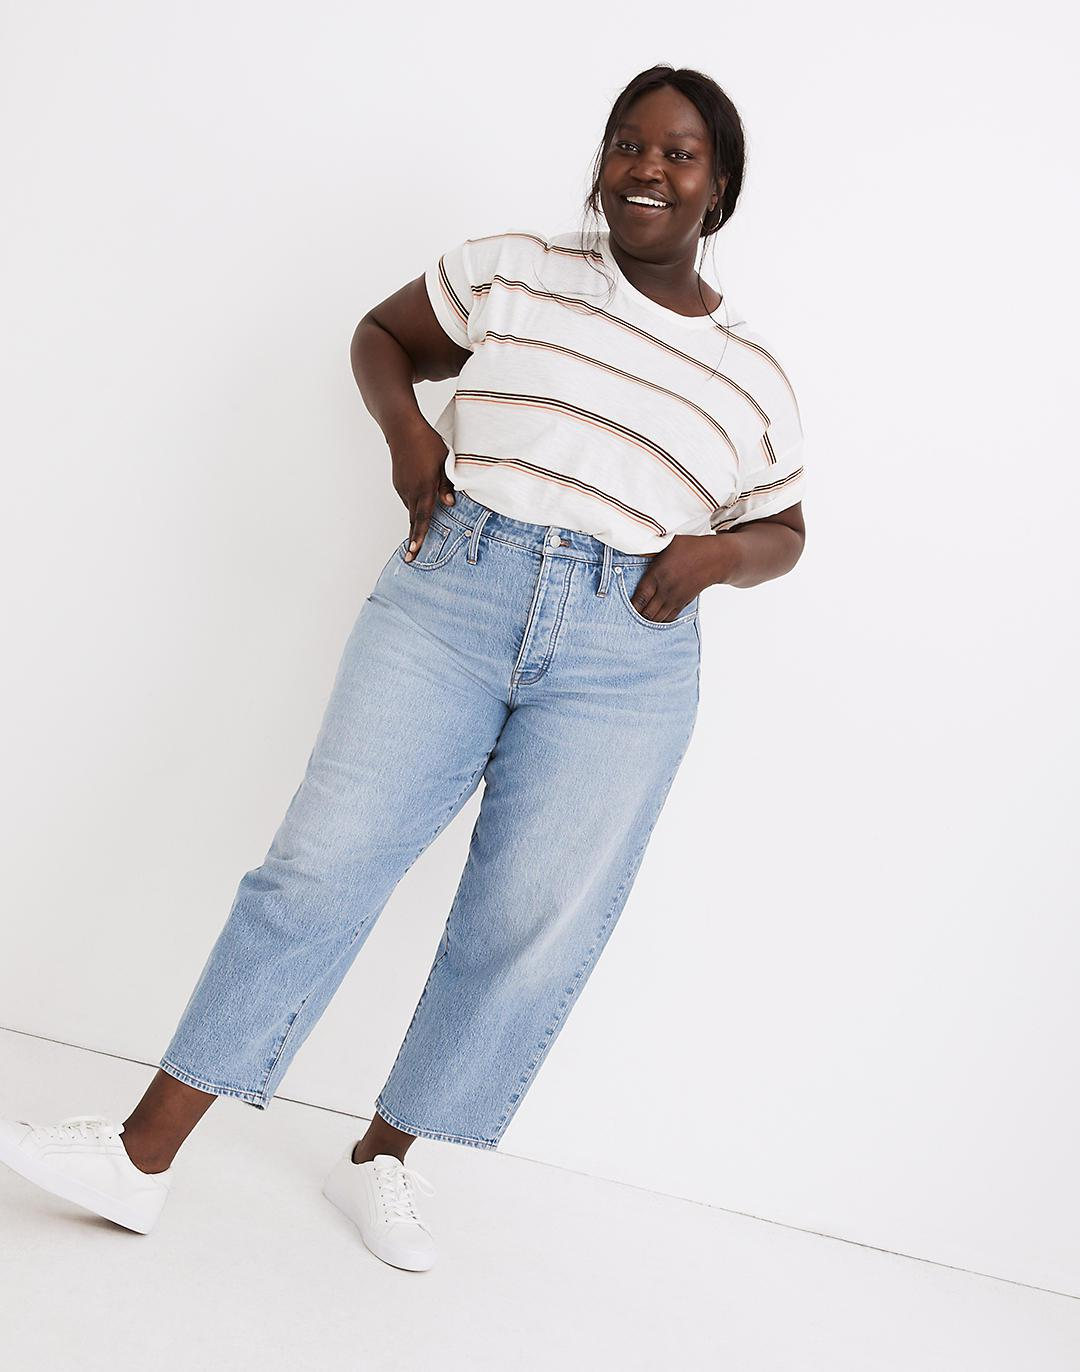 Plus Balloon Jeans in Hewes Wash